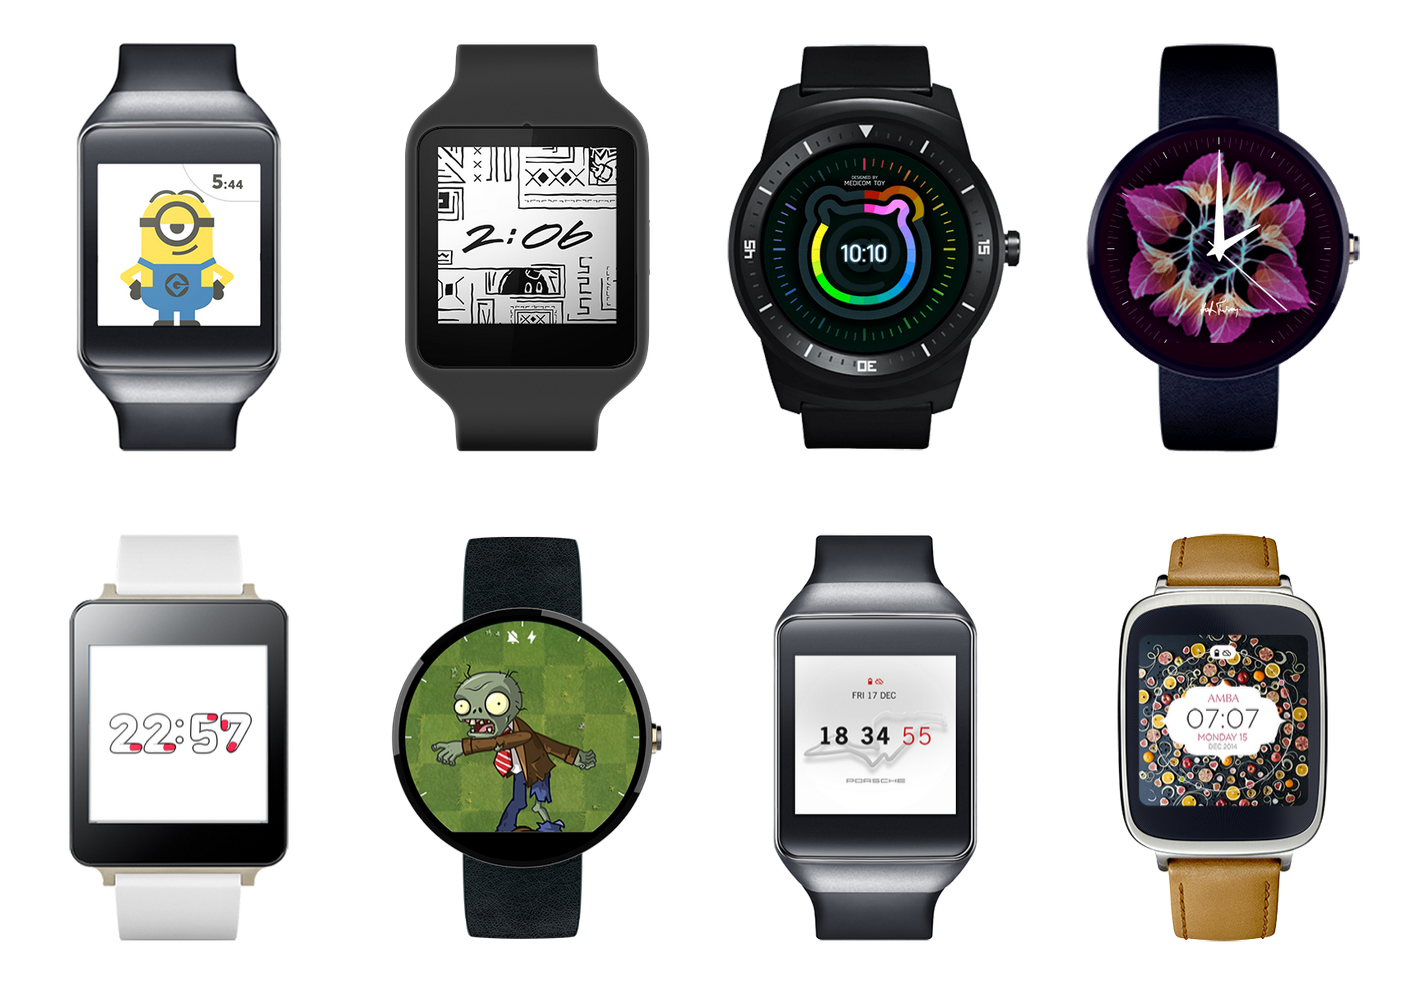 The limits of Android Wear compatibility with iOS